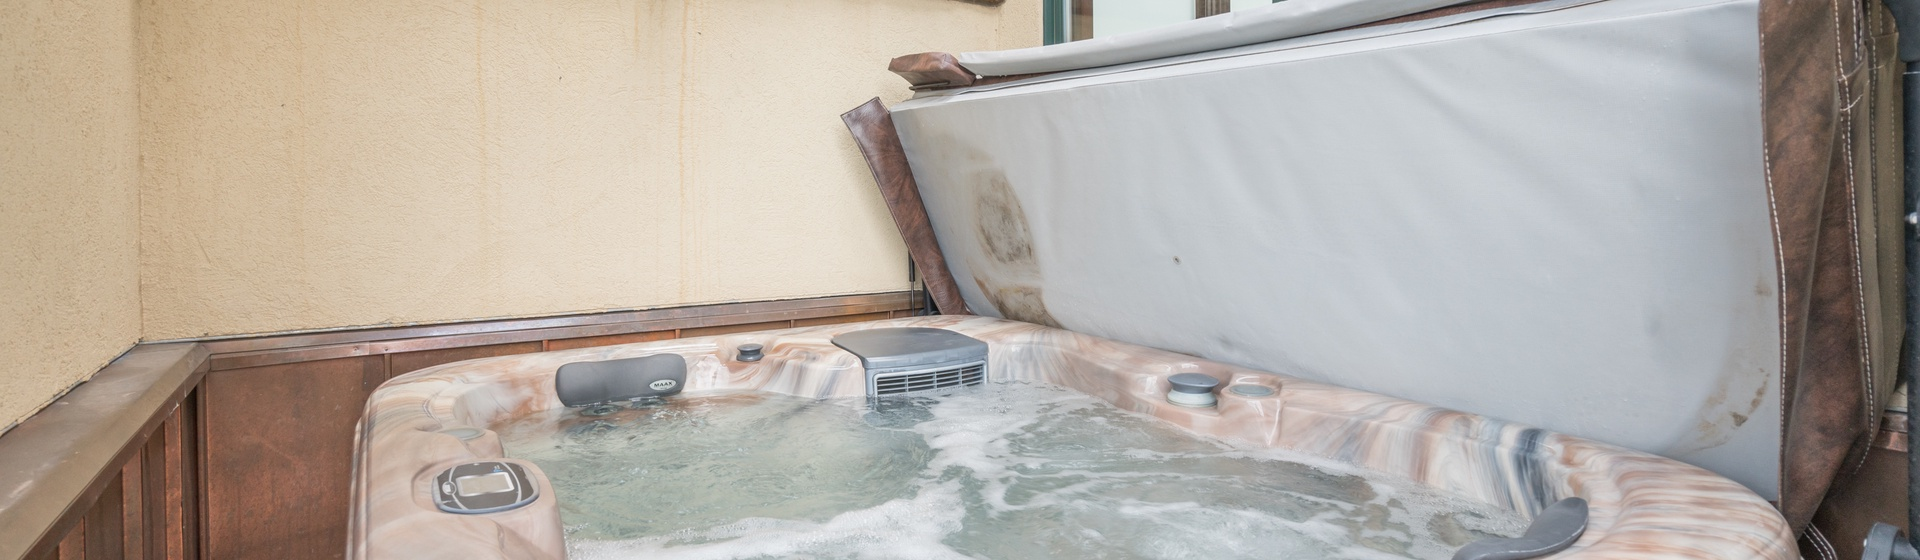 4.04-mountain-village-telemark-tower-hot-tub-web.jpg